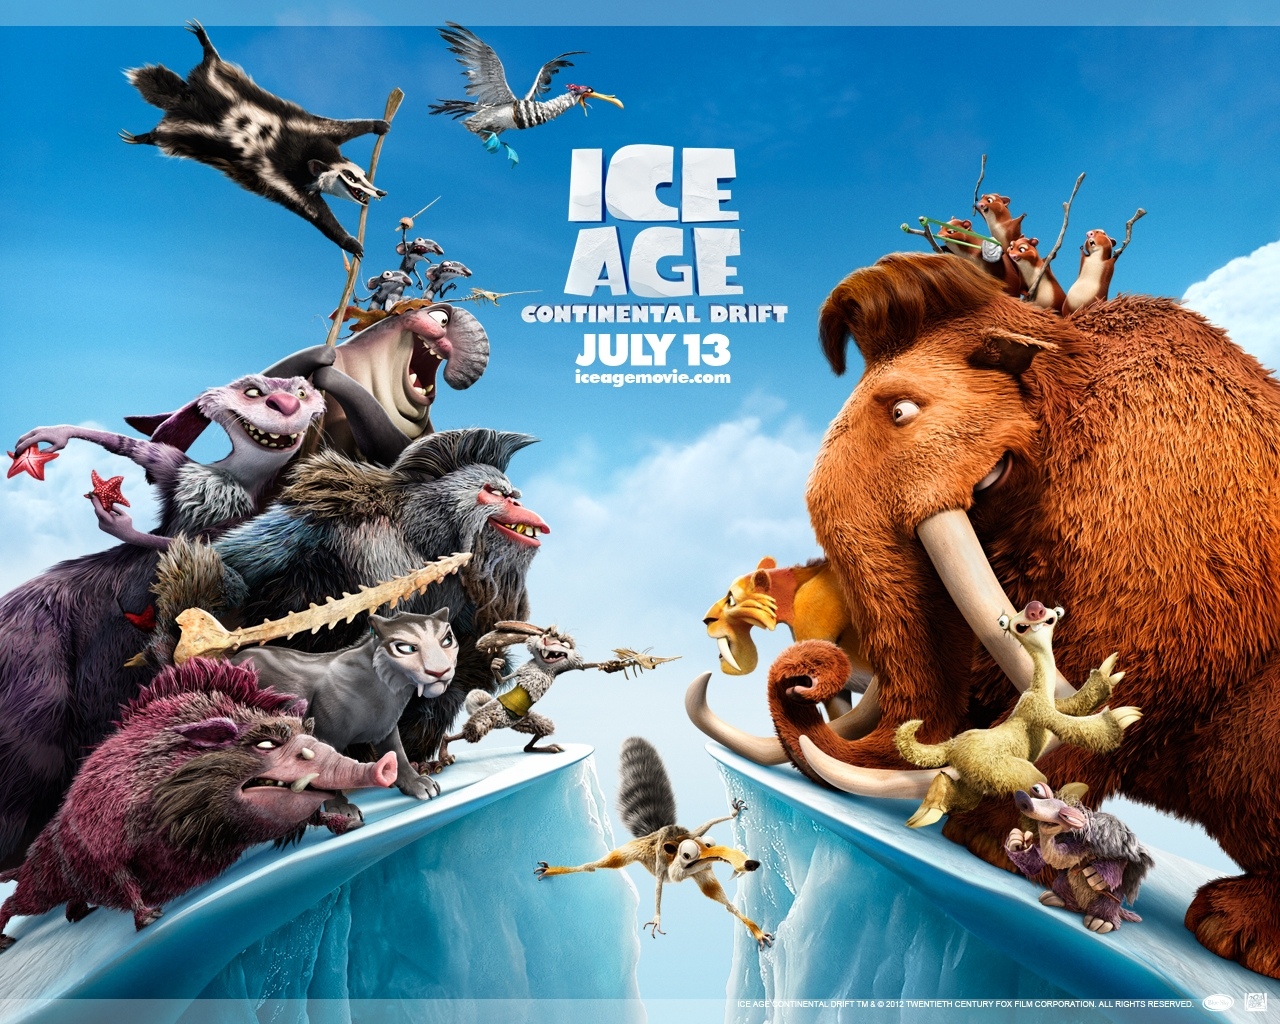 ice age 4 wallpaper – 1280 x 1024 pixels – 1 MB